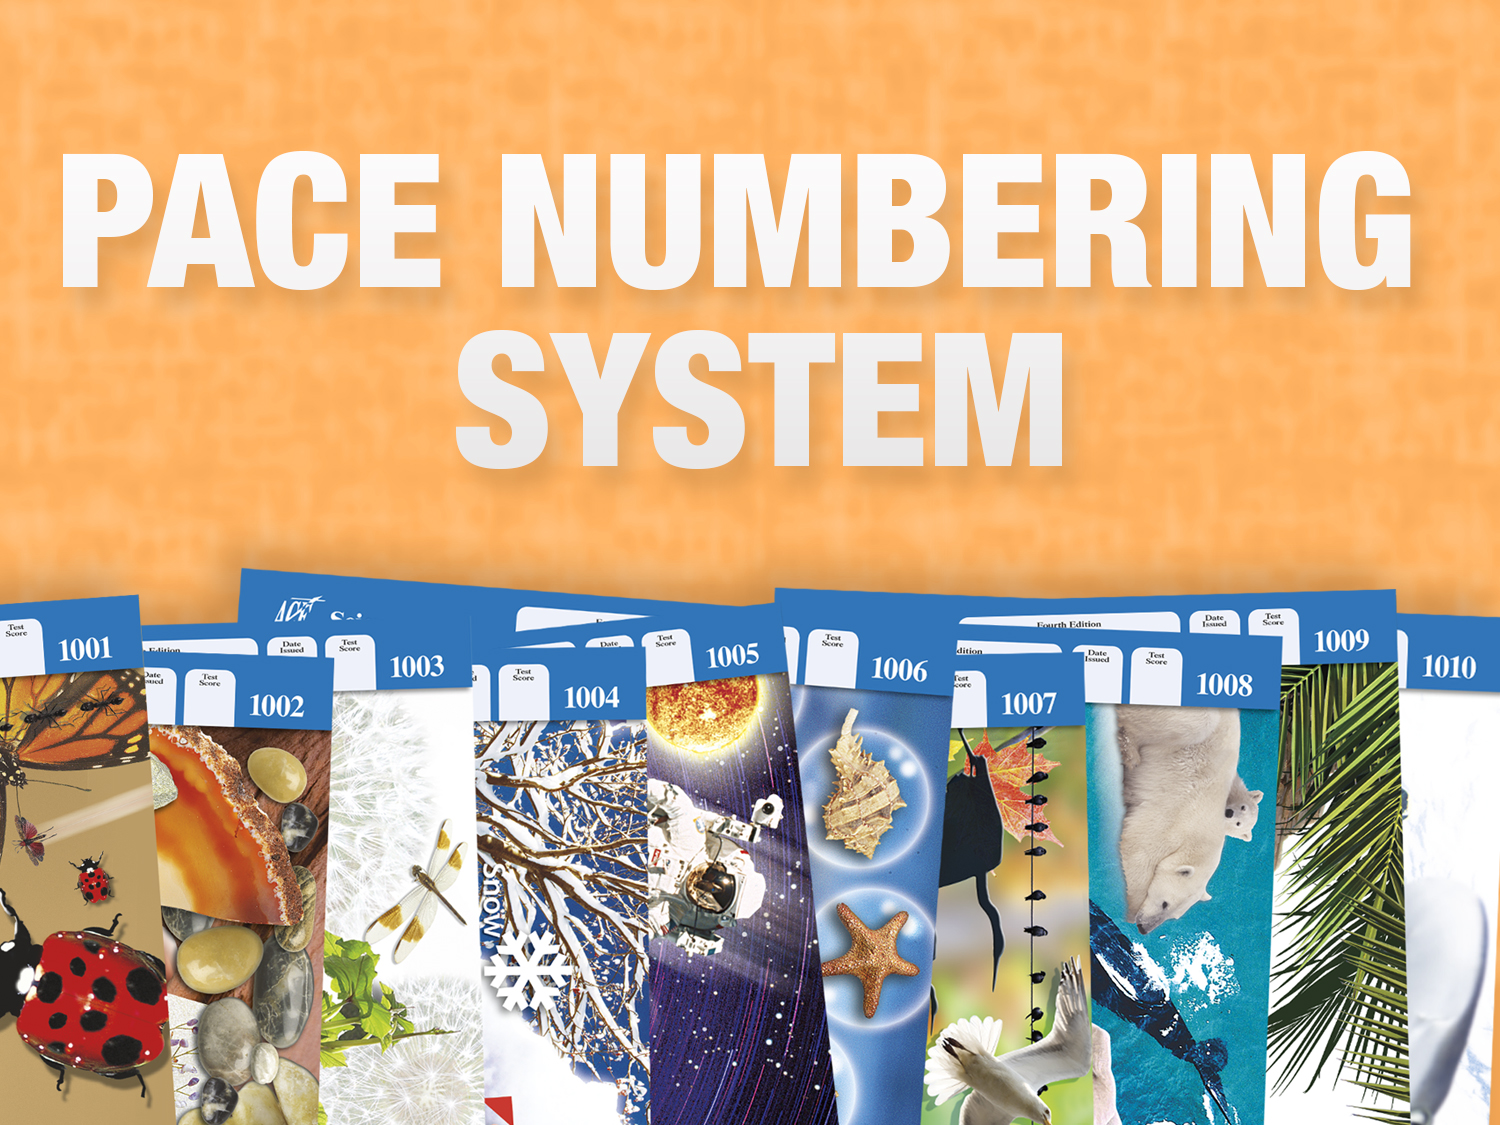 PACE Numbering System